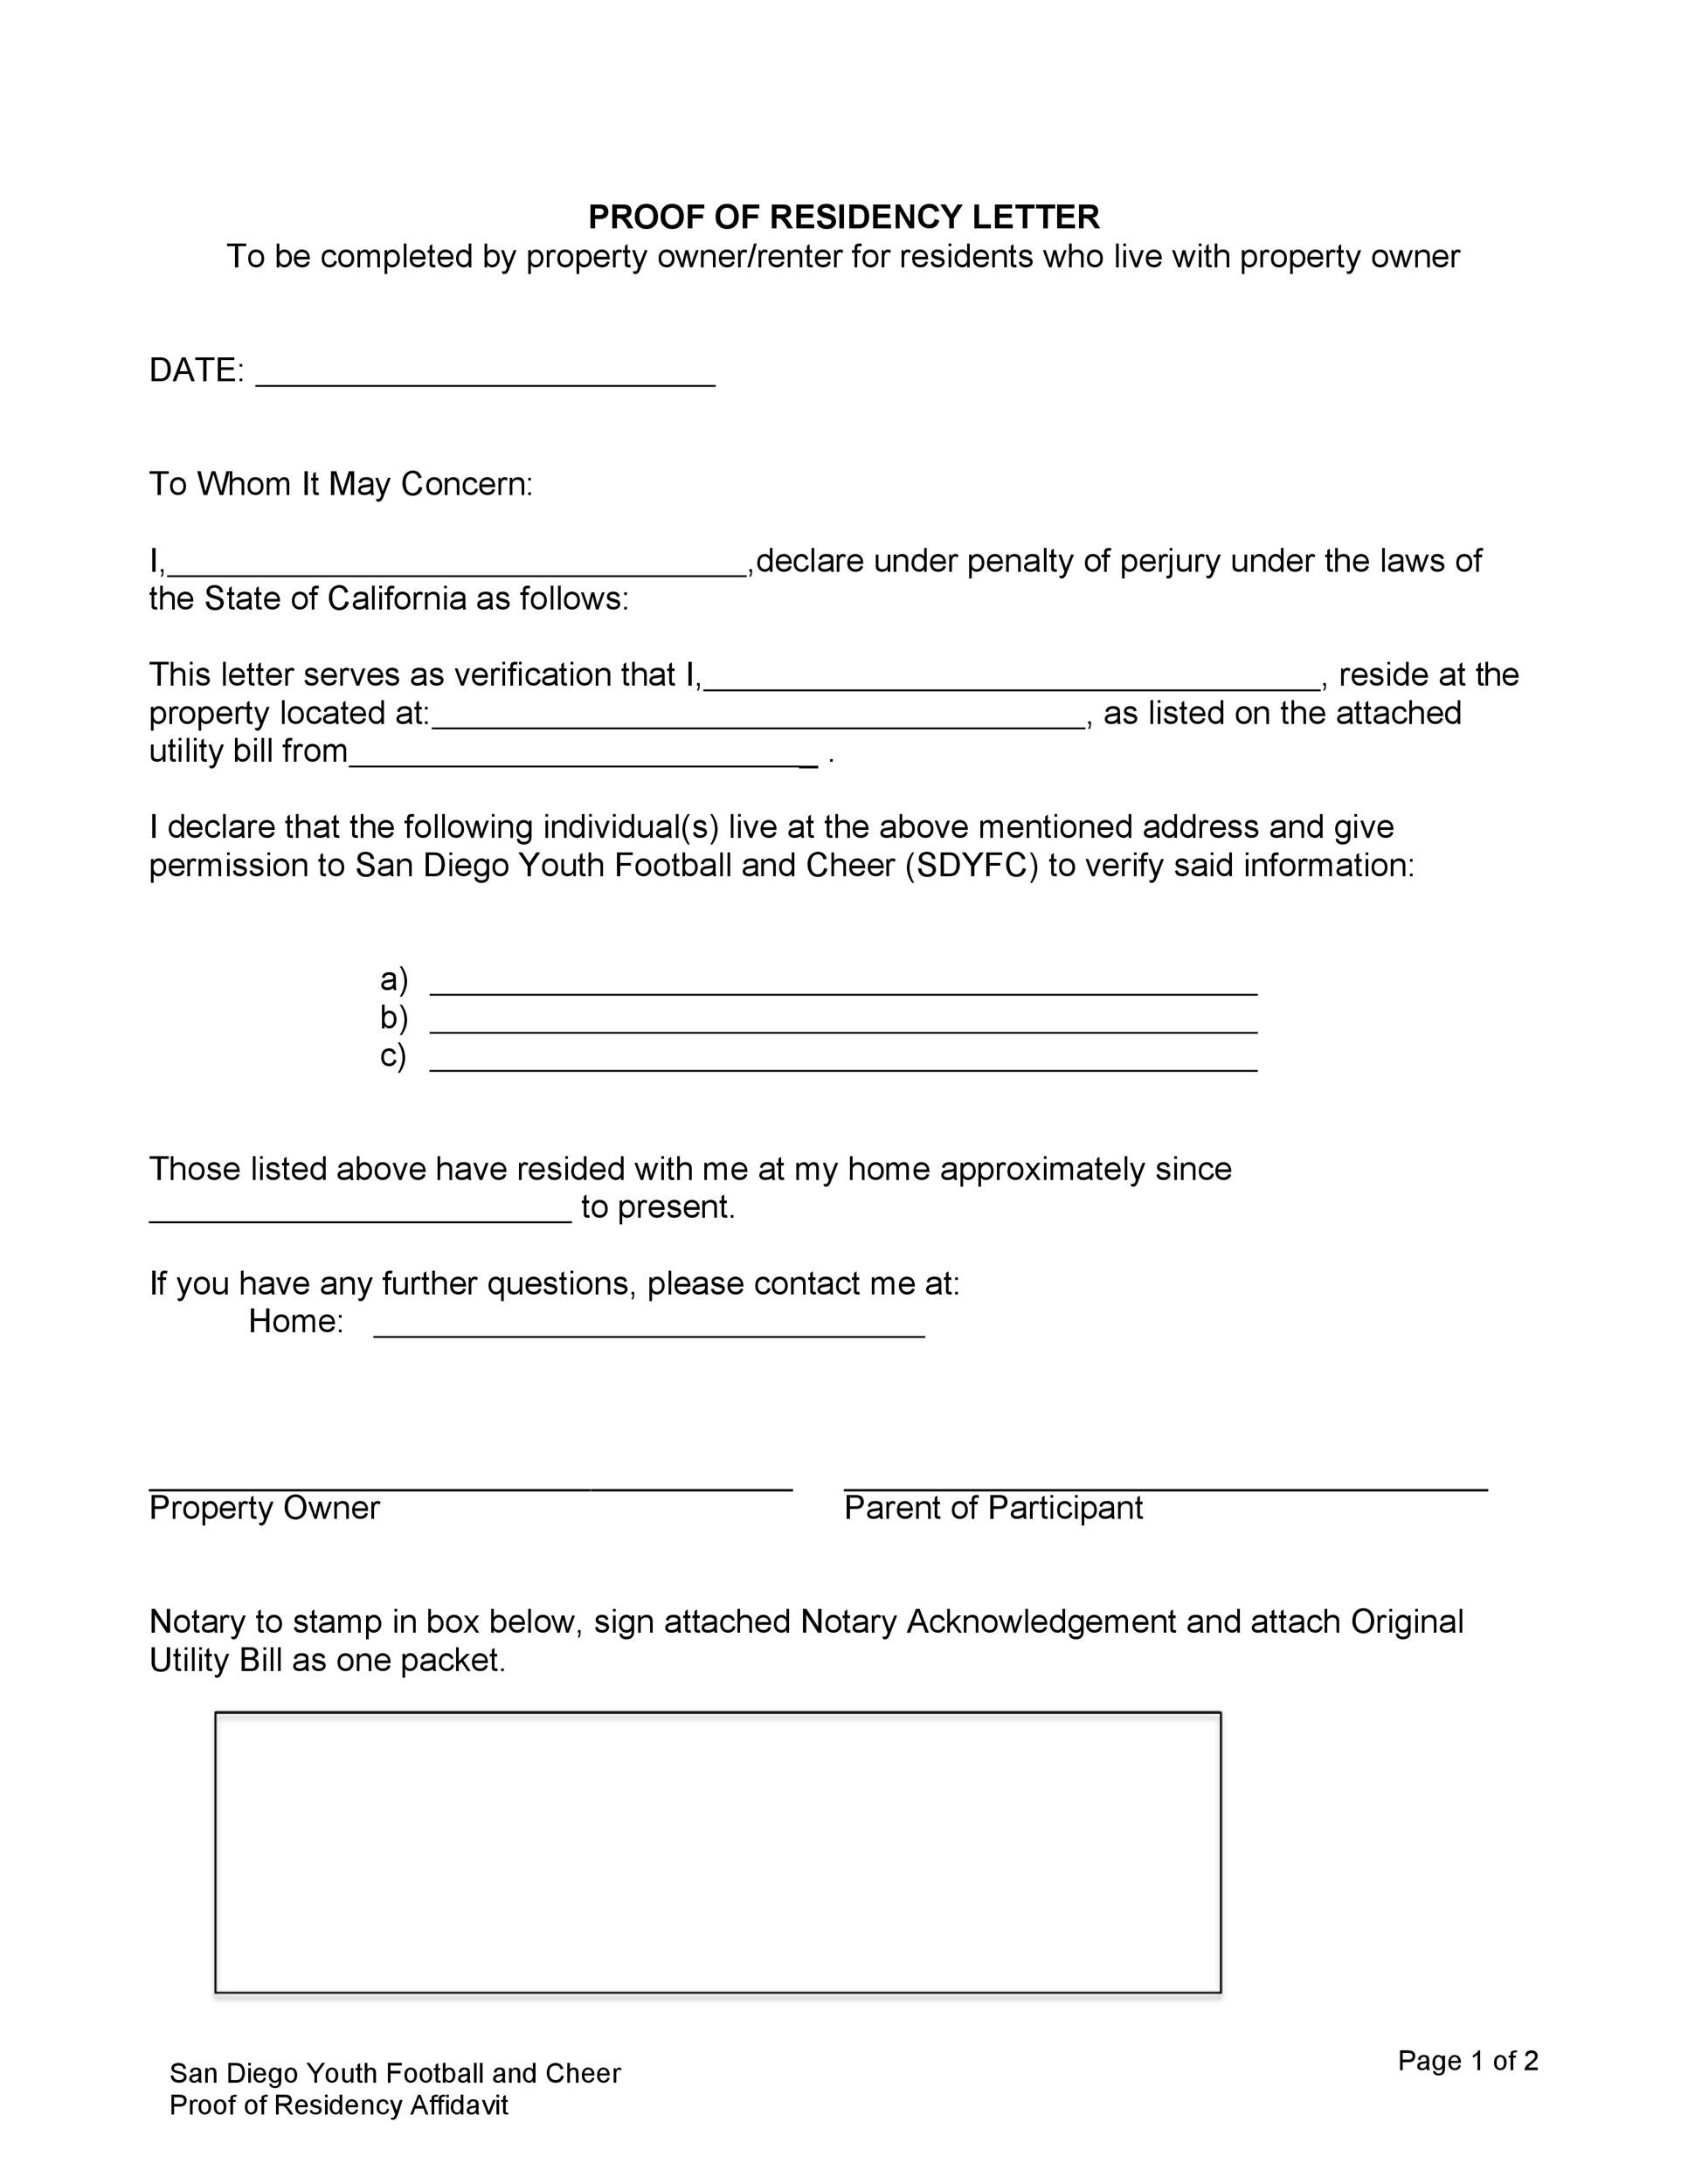 Free proof of residency letter 34